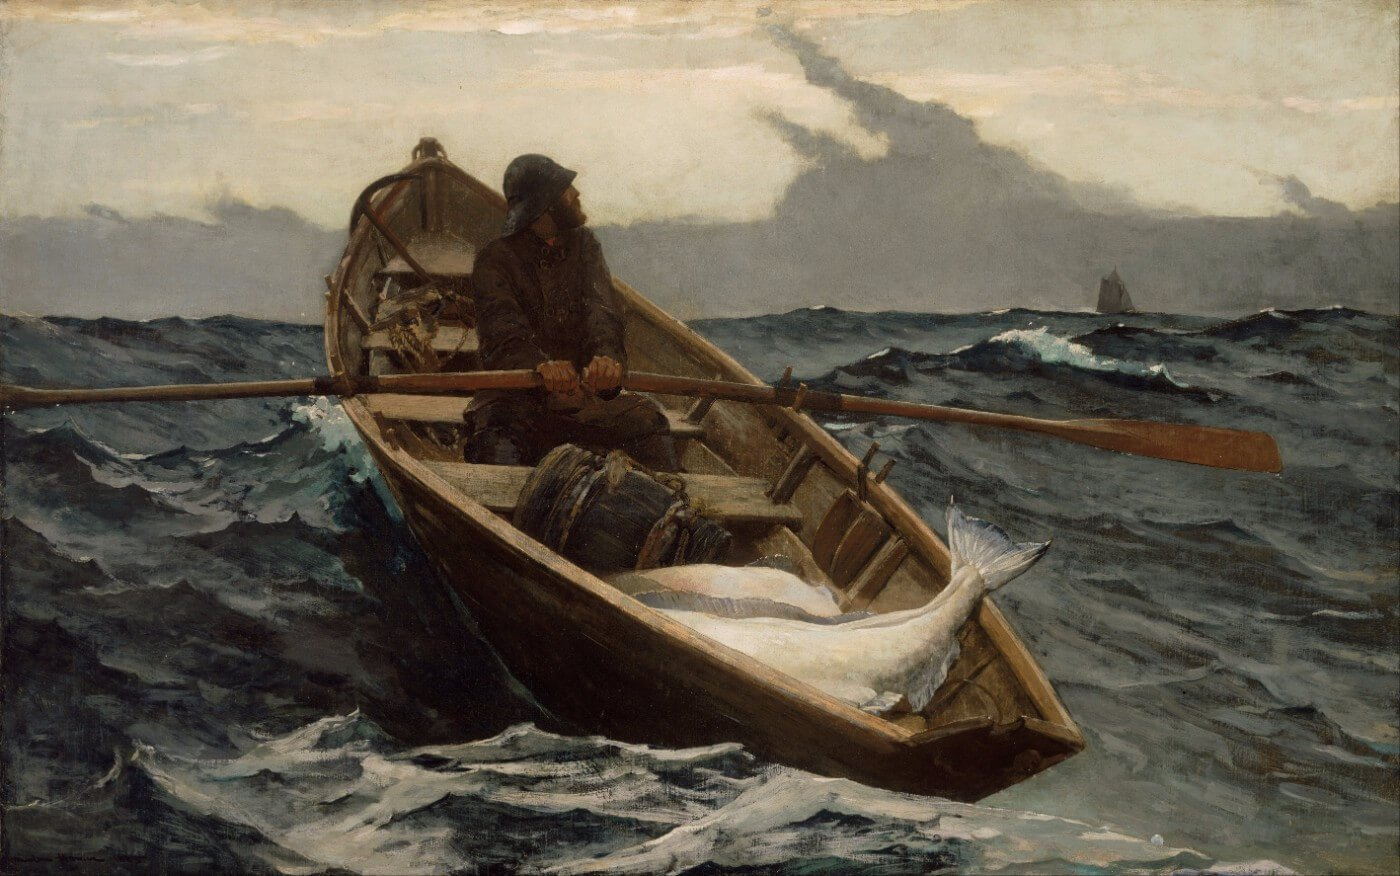 Winslow Homer Paintings | Buy Posters, Frames, Canvas, Digital Art & Large Size Prints Of The Famous Modern Master's Artworks